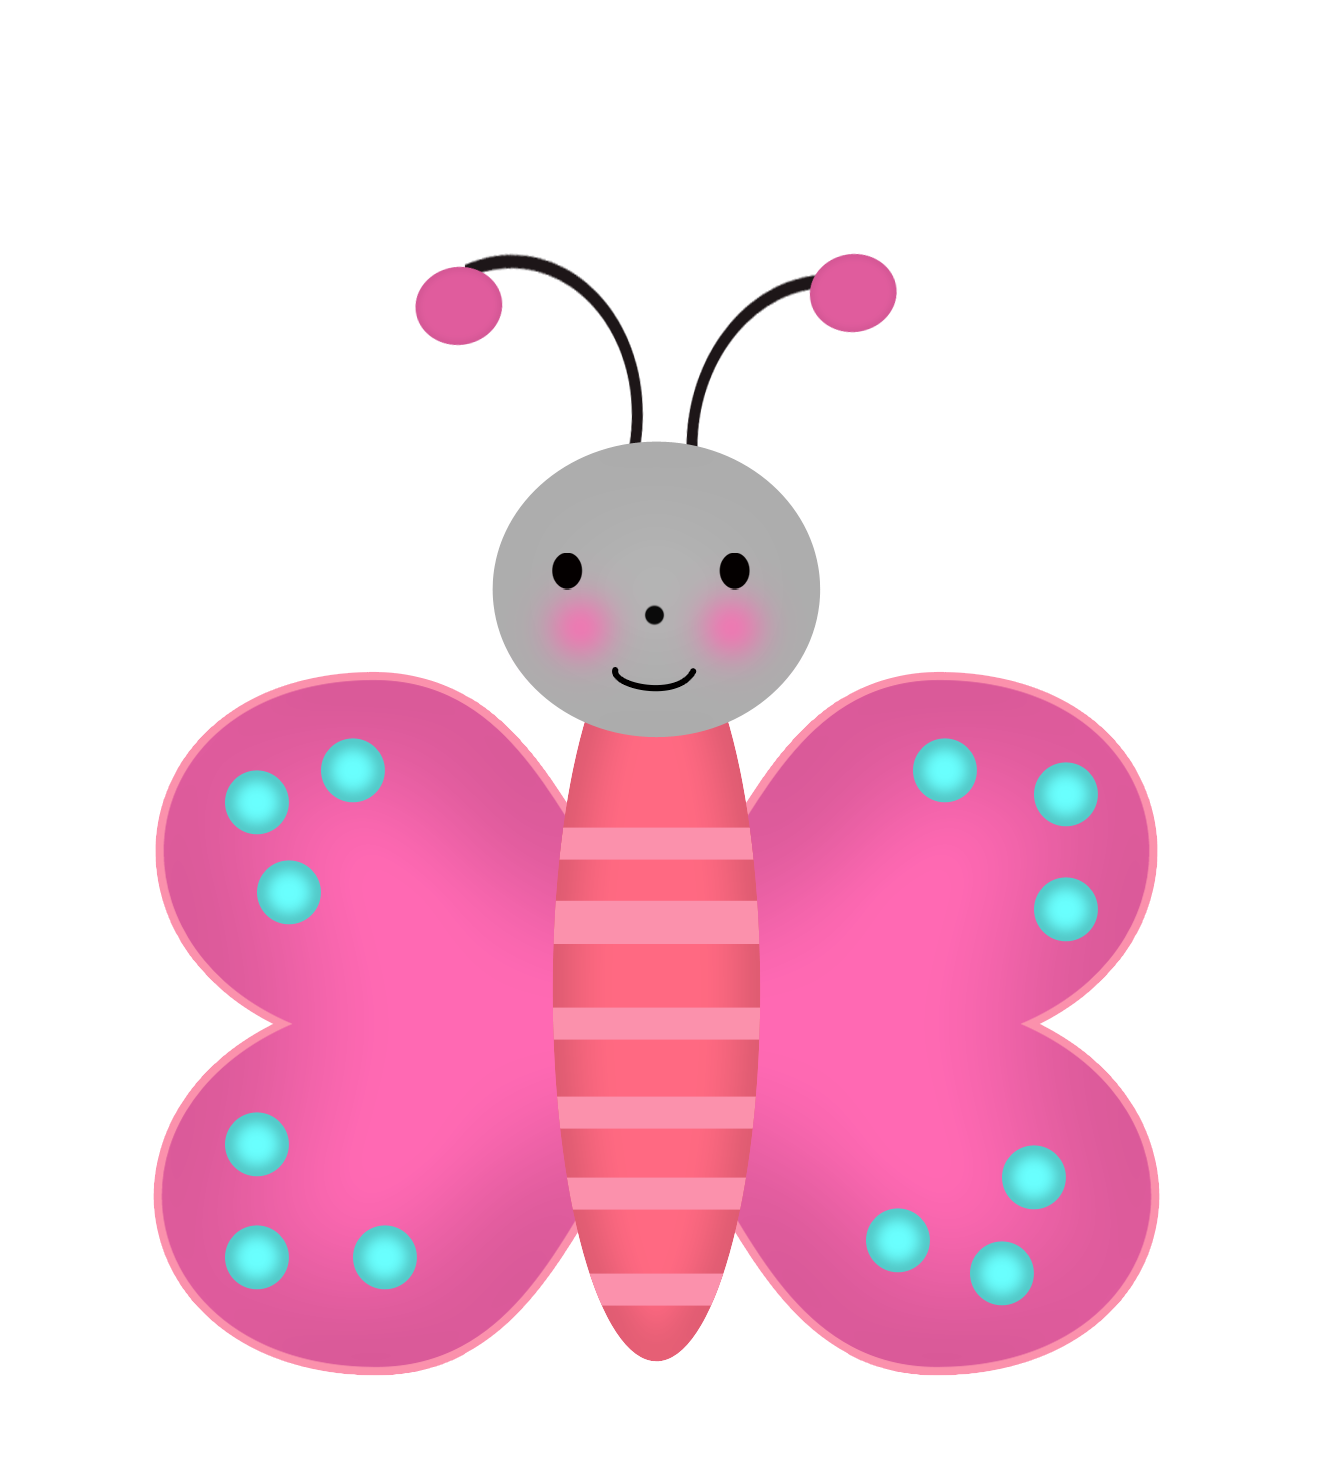 Butterfly clipart enchanted. Garden images oh my